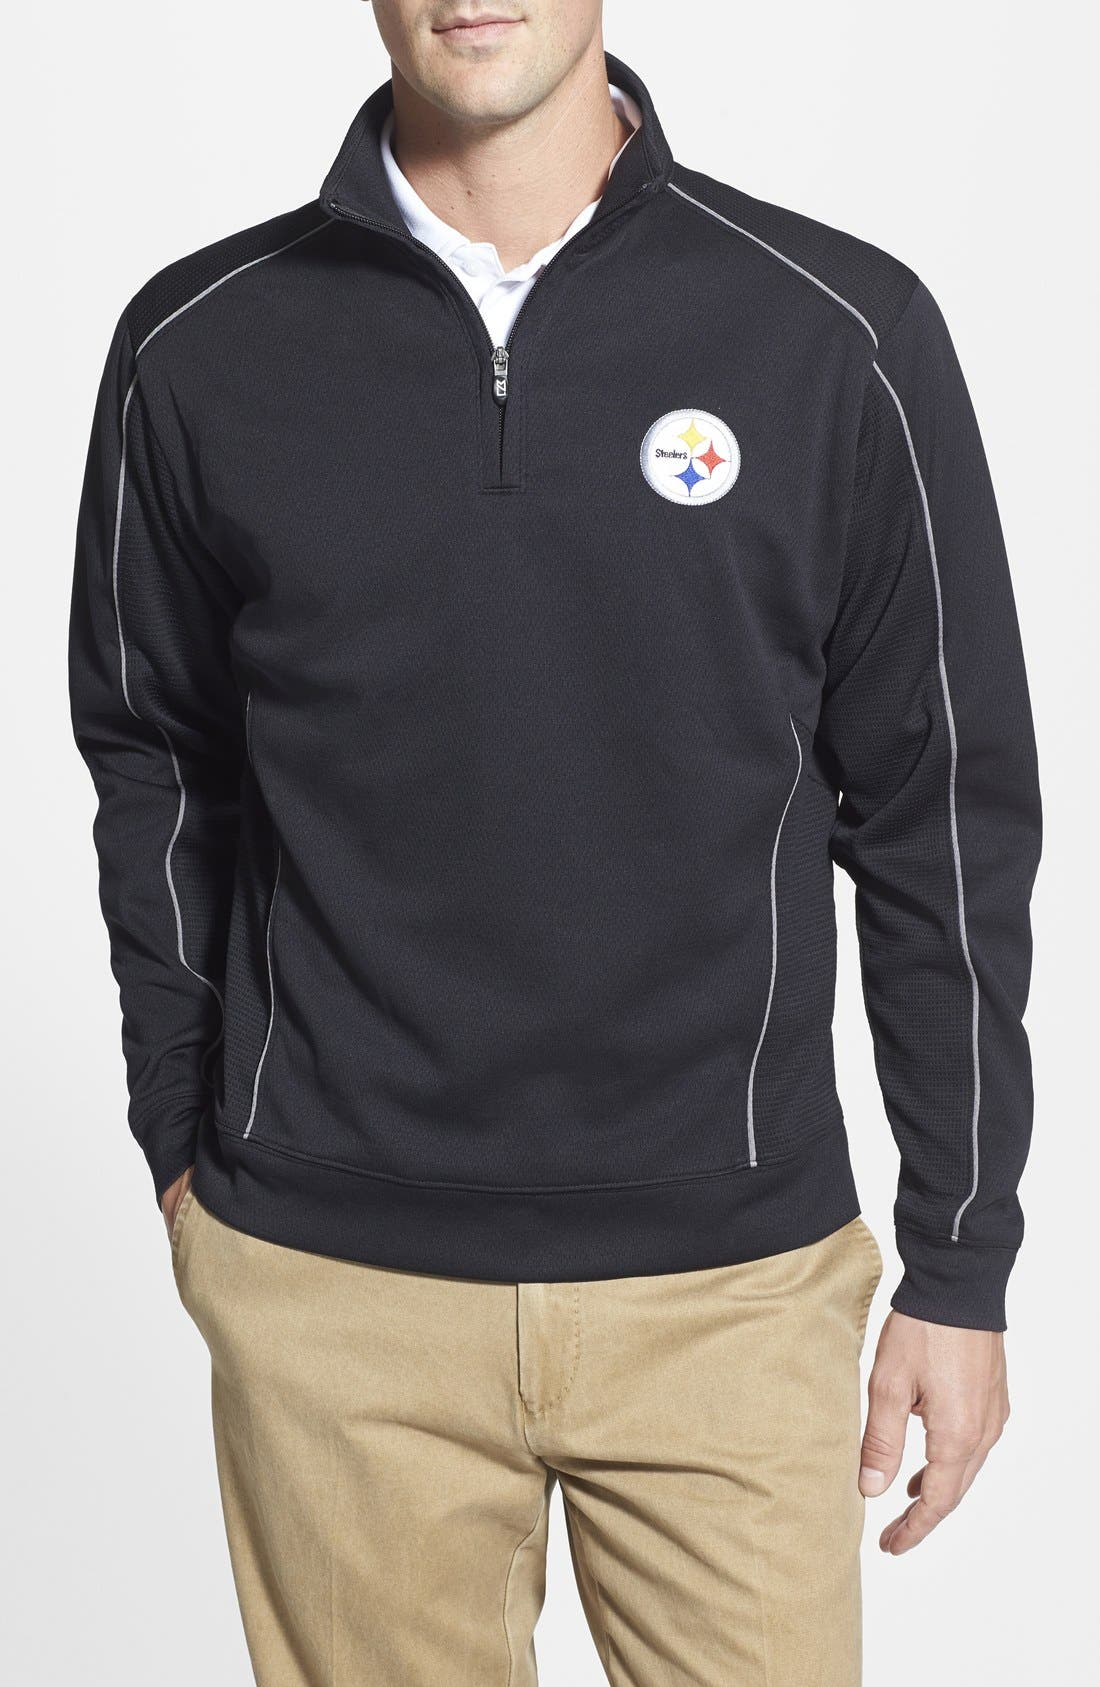 Cutter & Buck Pittsburgh Steelers - Edge DryTec Moisture Wicking Half Zip Pullover